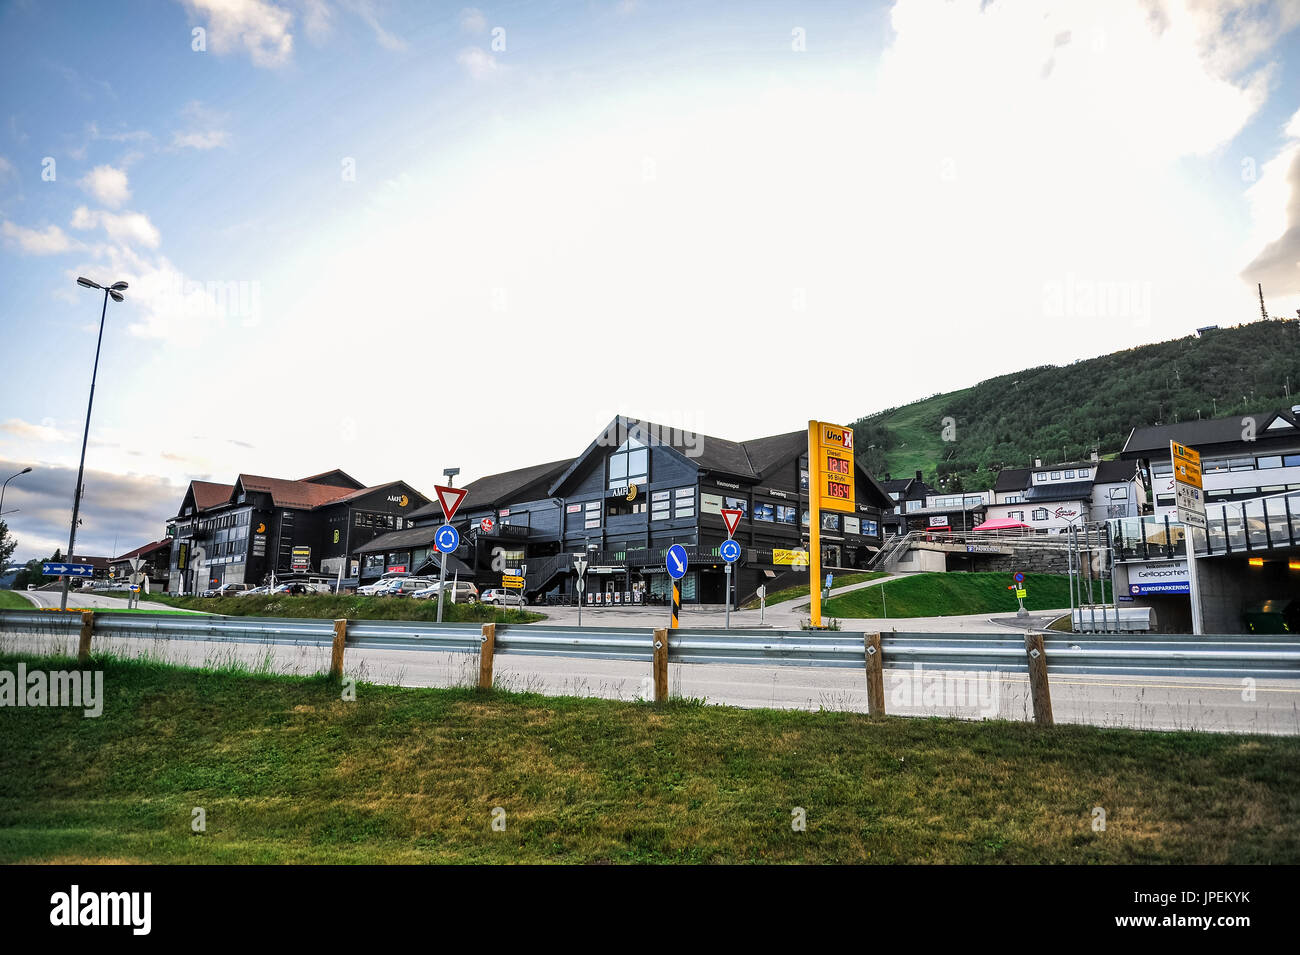 GEILO, NORWAY - JULY 19: Geilo sentrum, a small entertainment complex in the city of Geilo, Norway - Stock Image